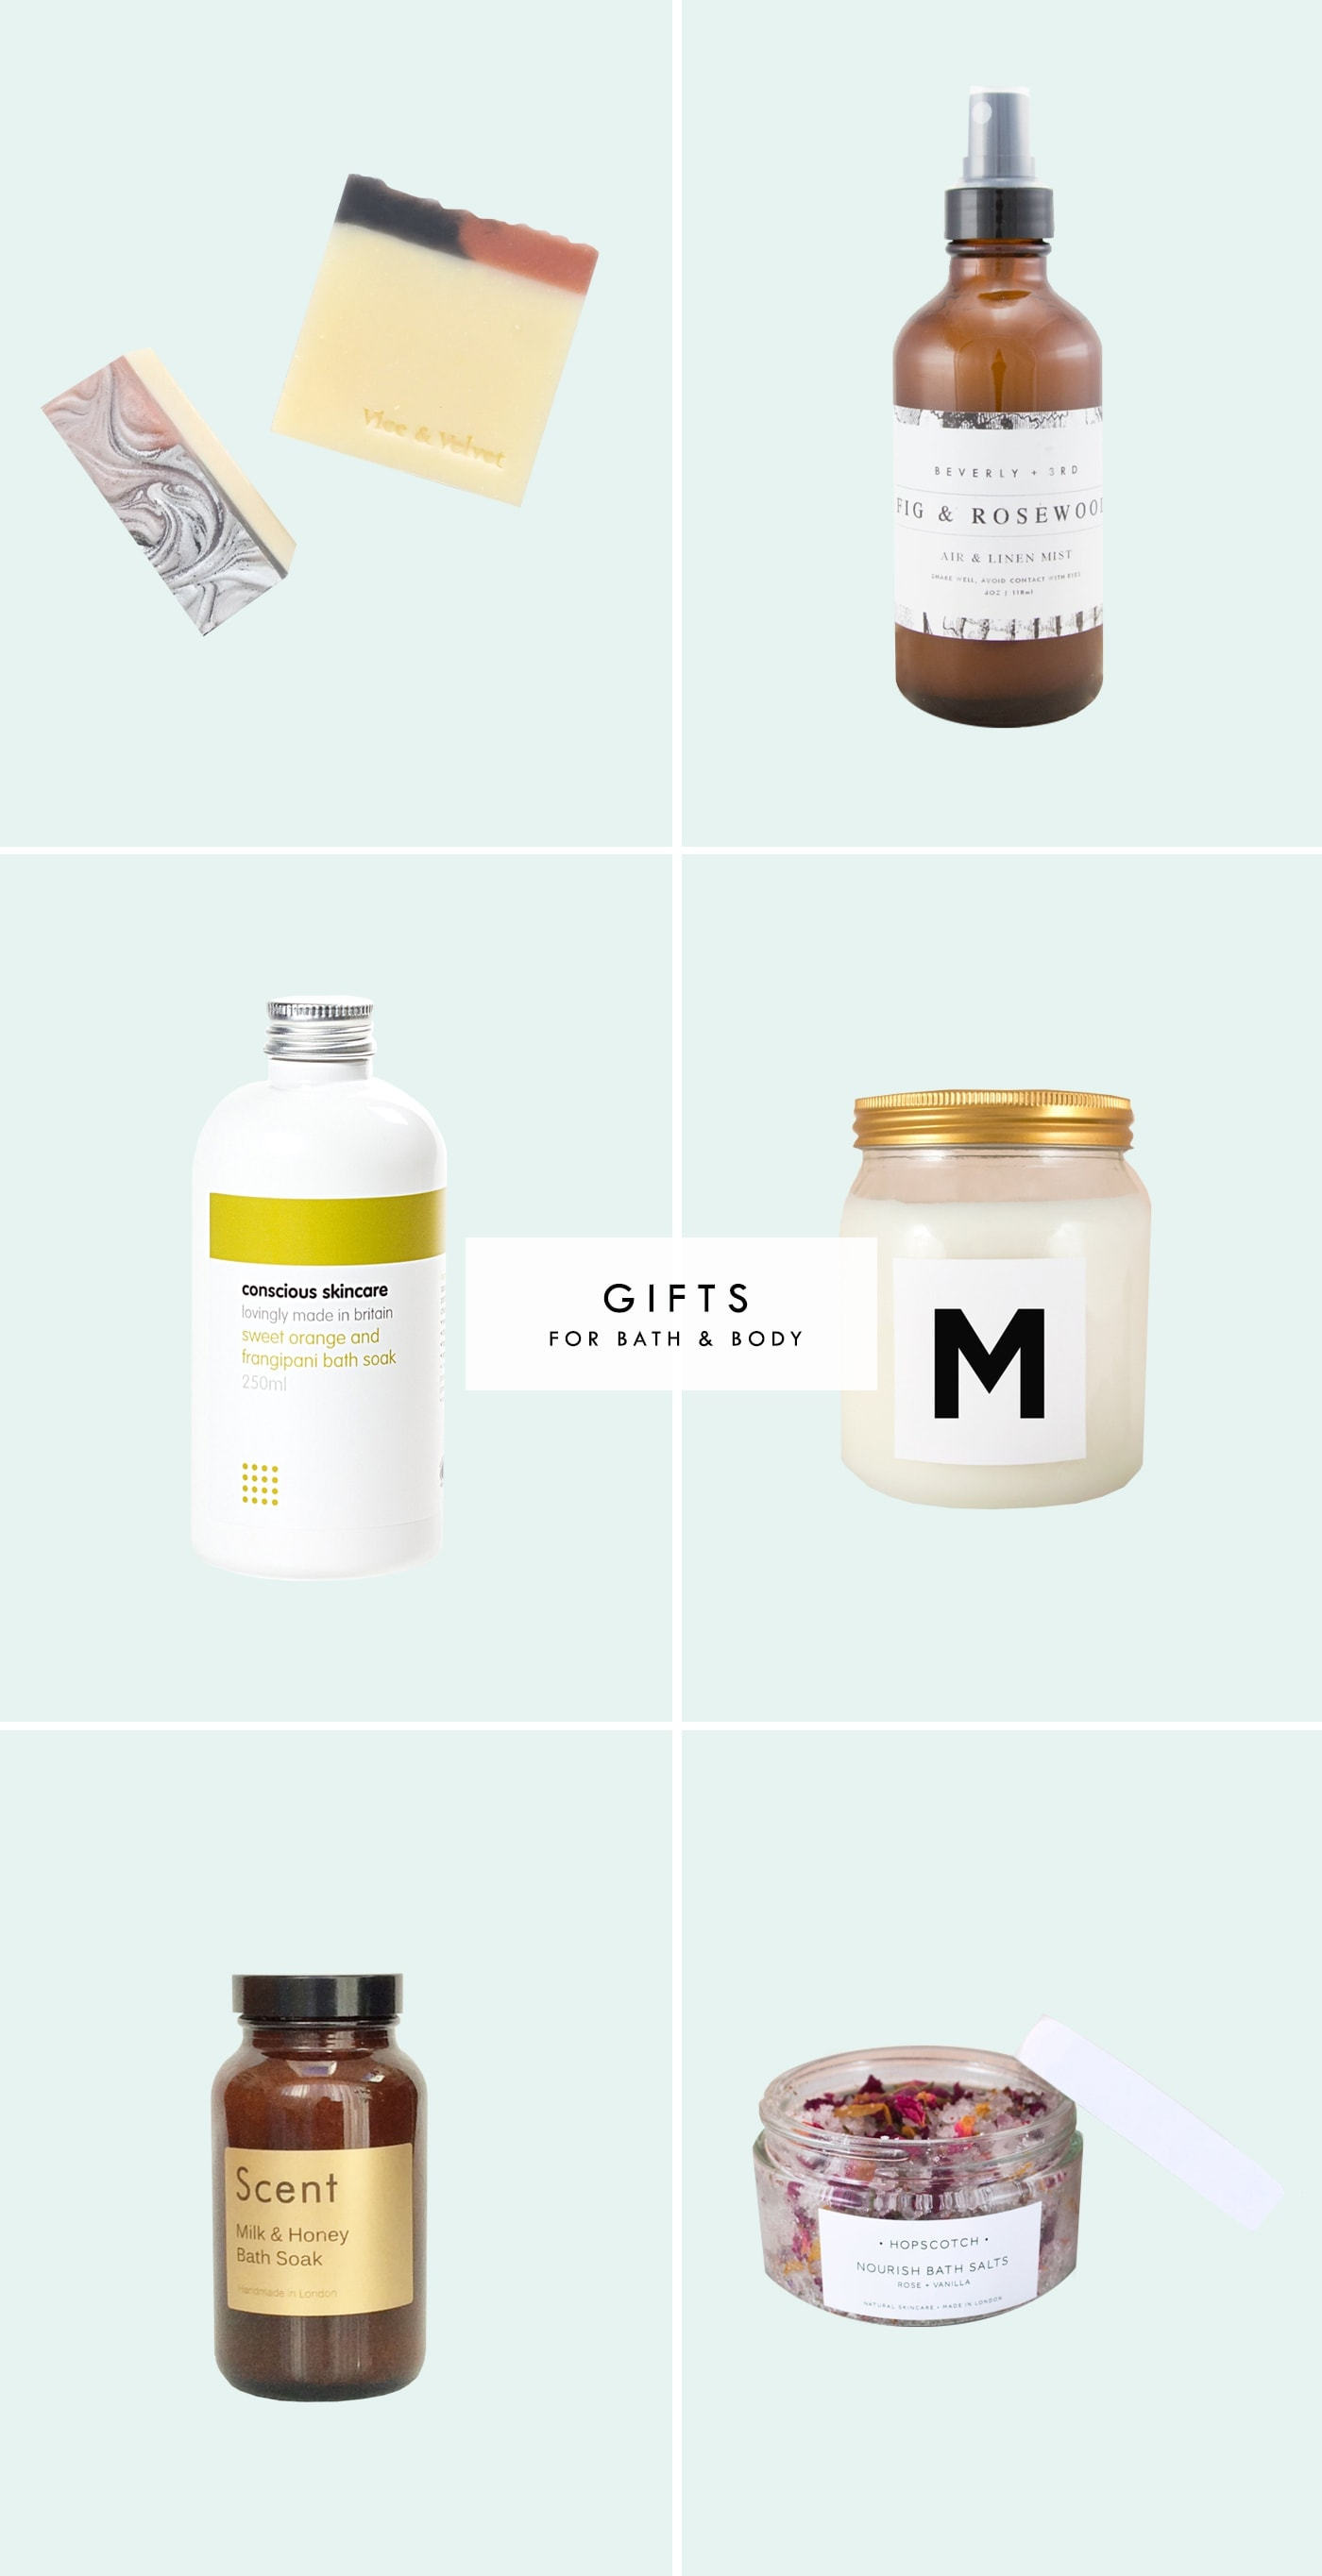 etsy-gift-guides-bath-and-body